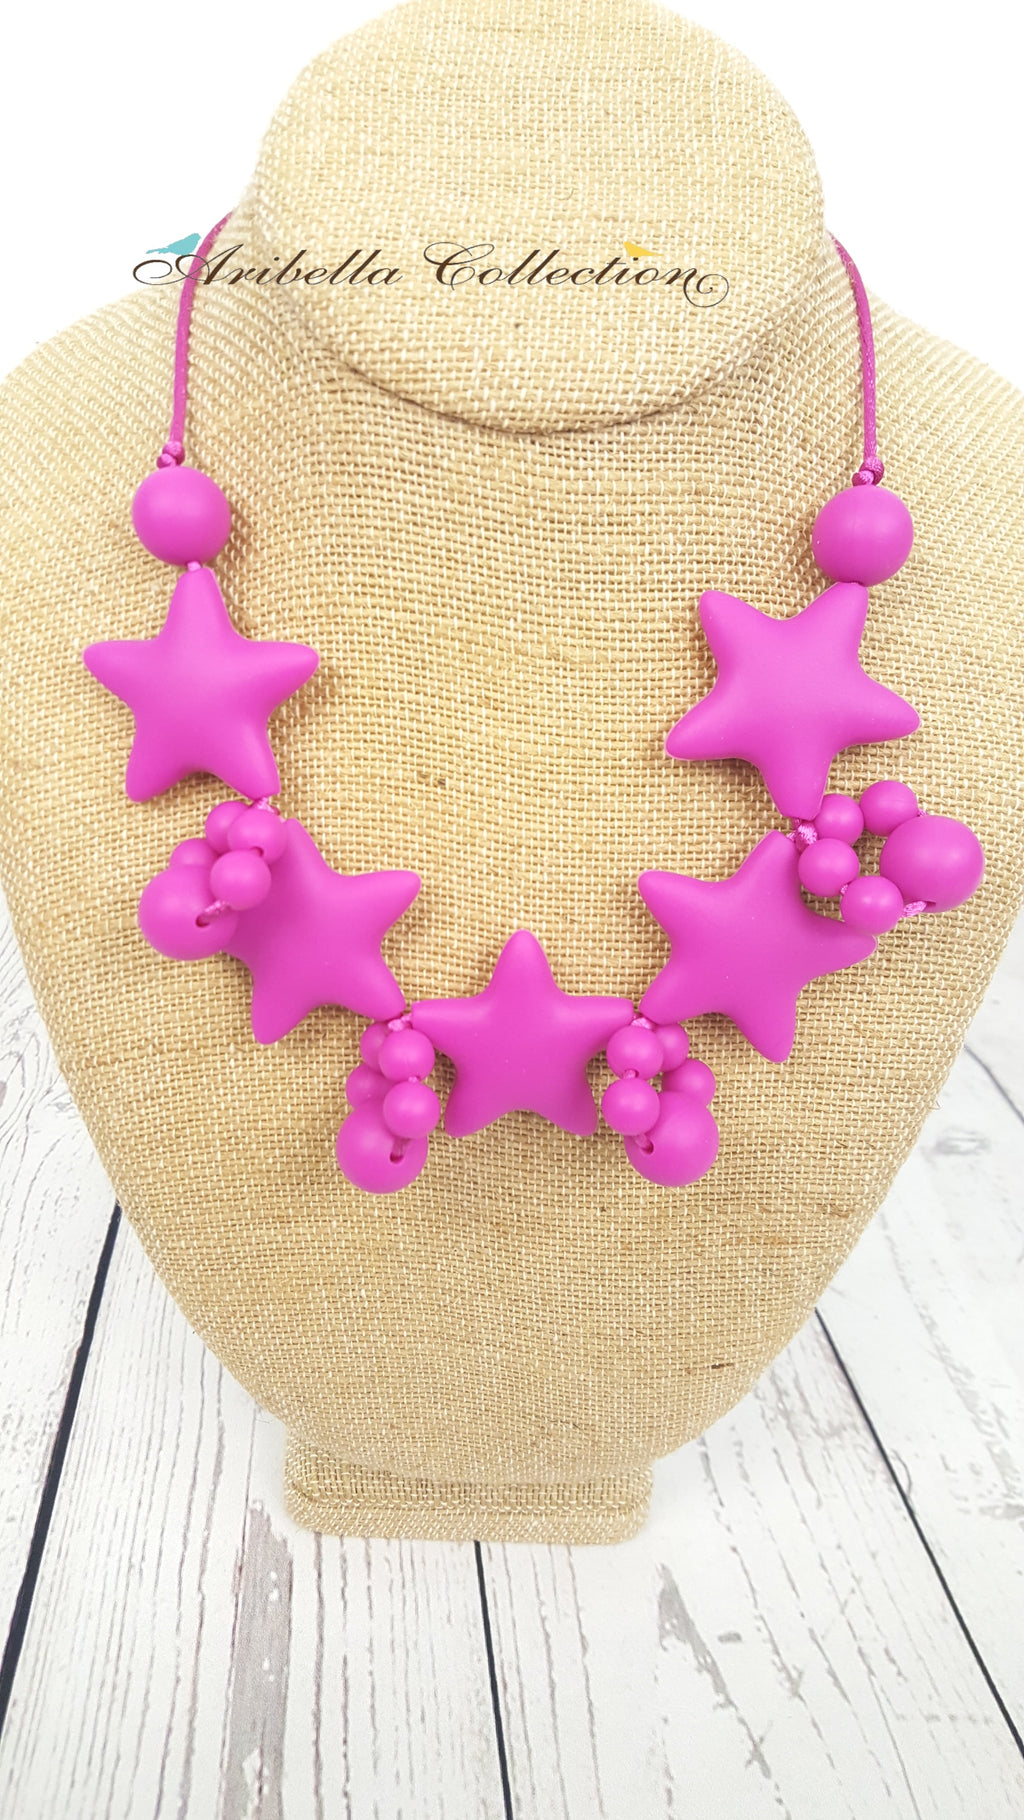 Silicone Necklace - Hot Pink - Aribella Collection